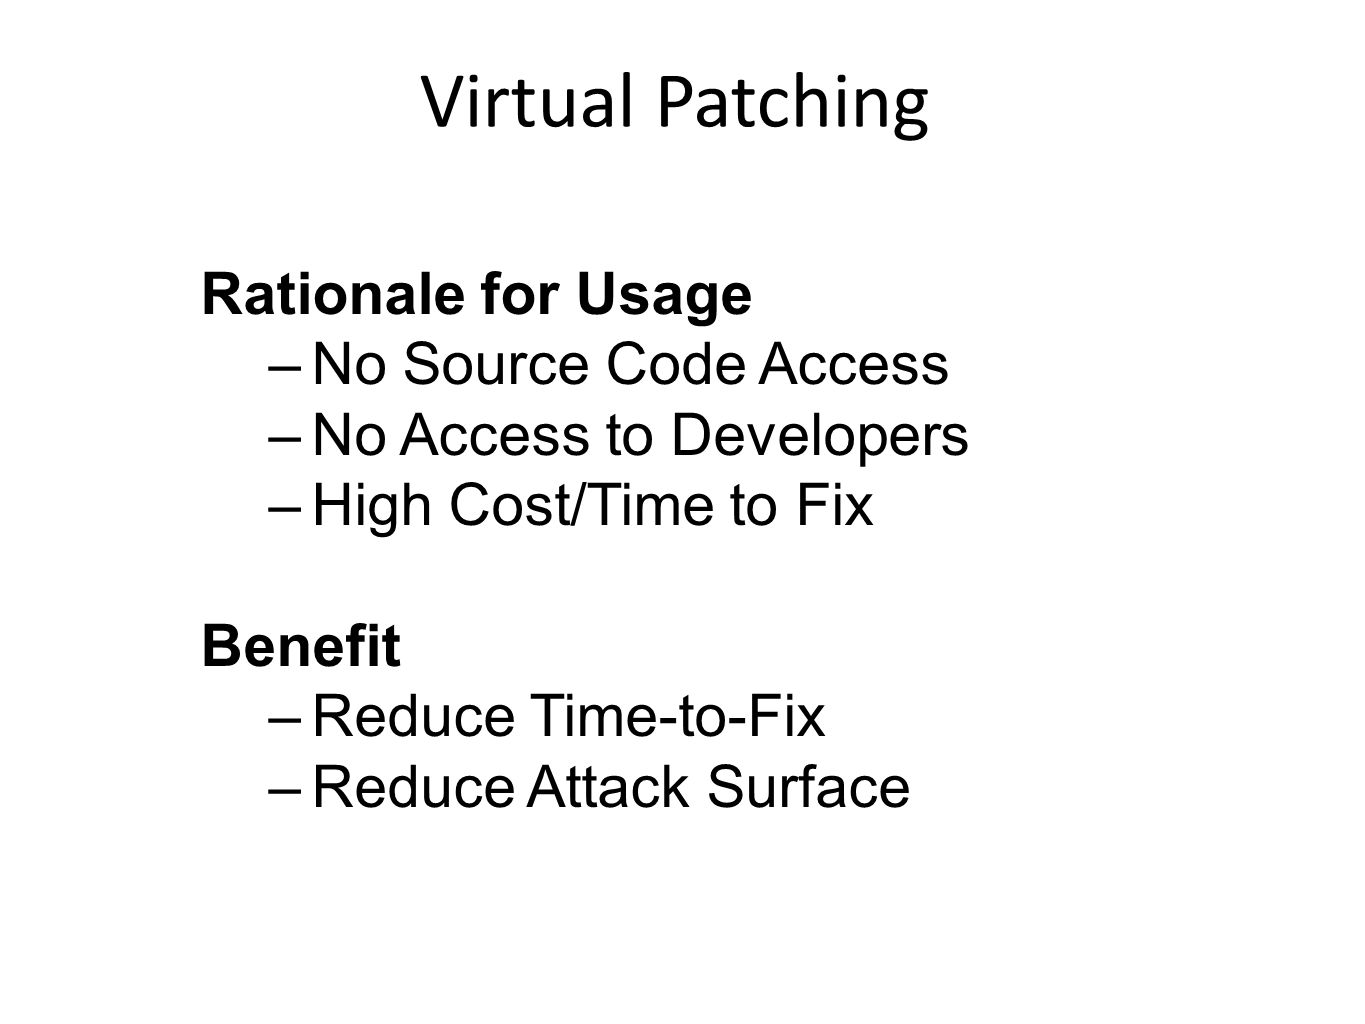 Rationale for Usage –No Source Code Access –No Access to Developers –High Cost/Time to Fix Benefit –Reduce Time-to-Fix –Reduce Attack Surface